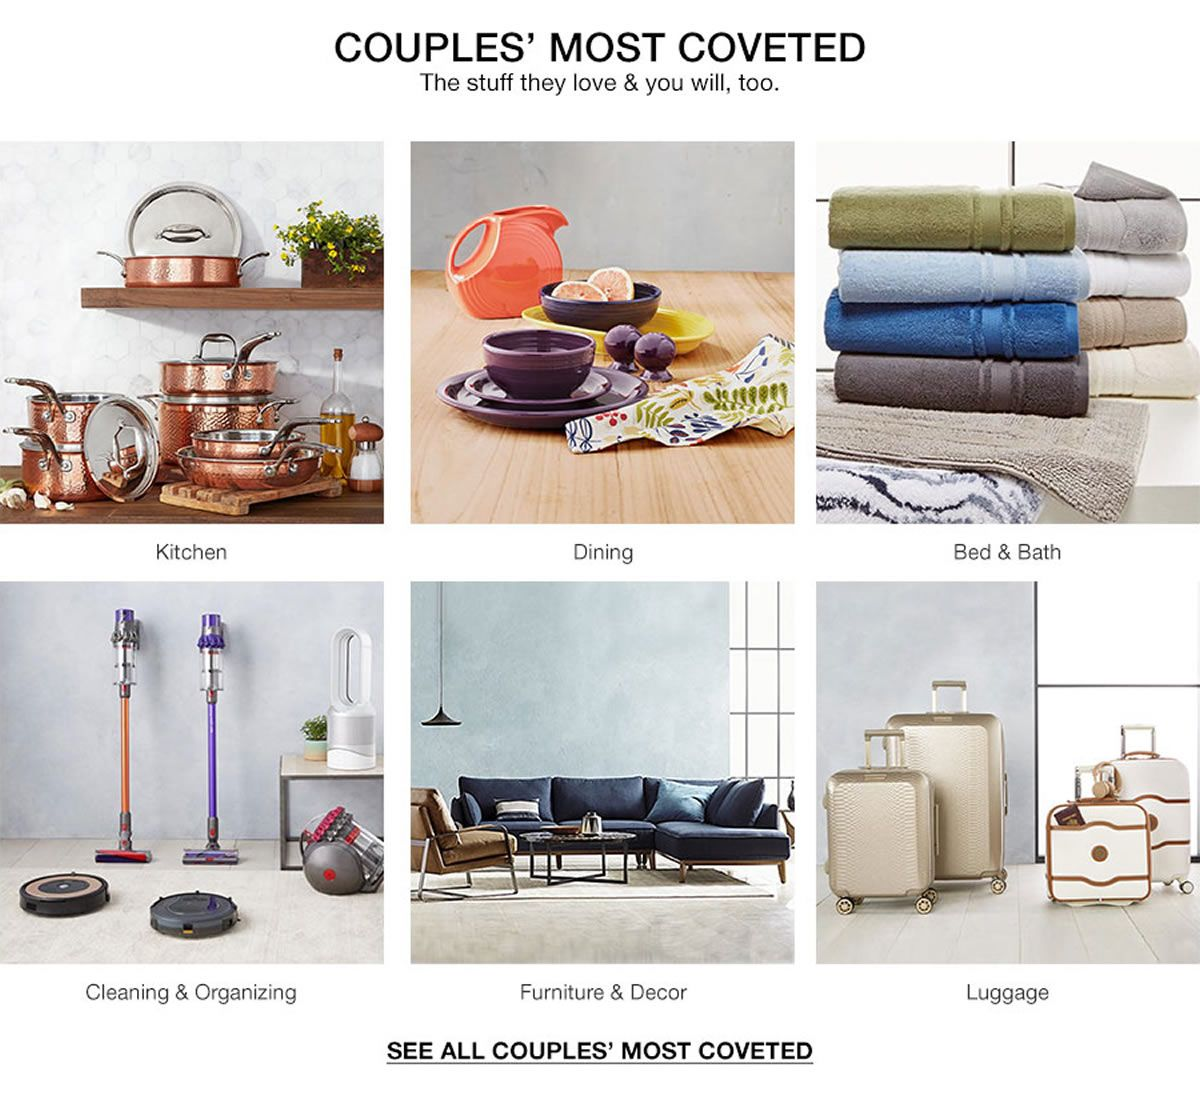 Couples' Most Coveted, The stuff they love and you will, too ,Kitchen, Dining, Bed and Bath, Cleaning and Organizing, Furniture and Decor, Luggage, See All Couples' Most Coveted